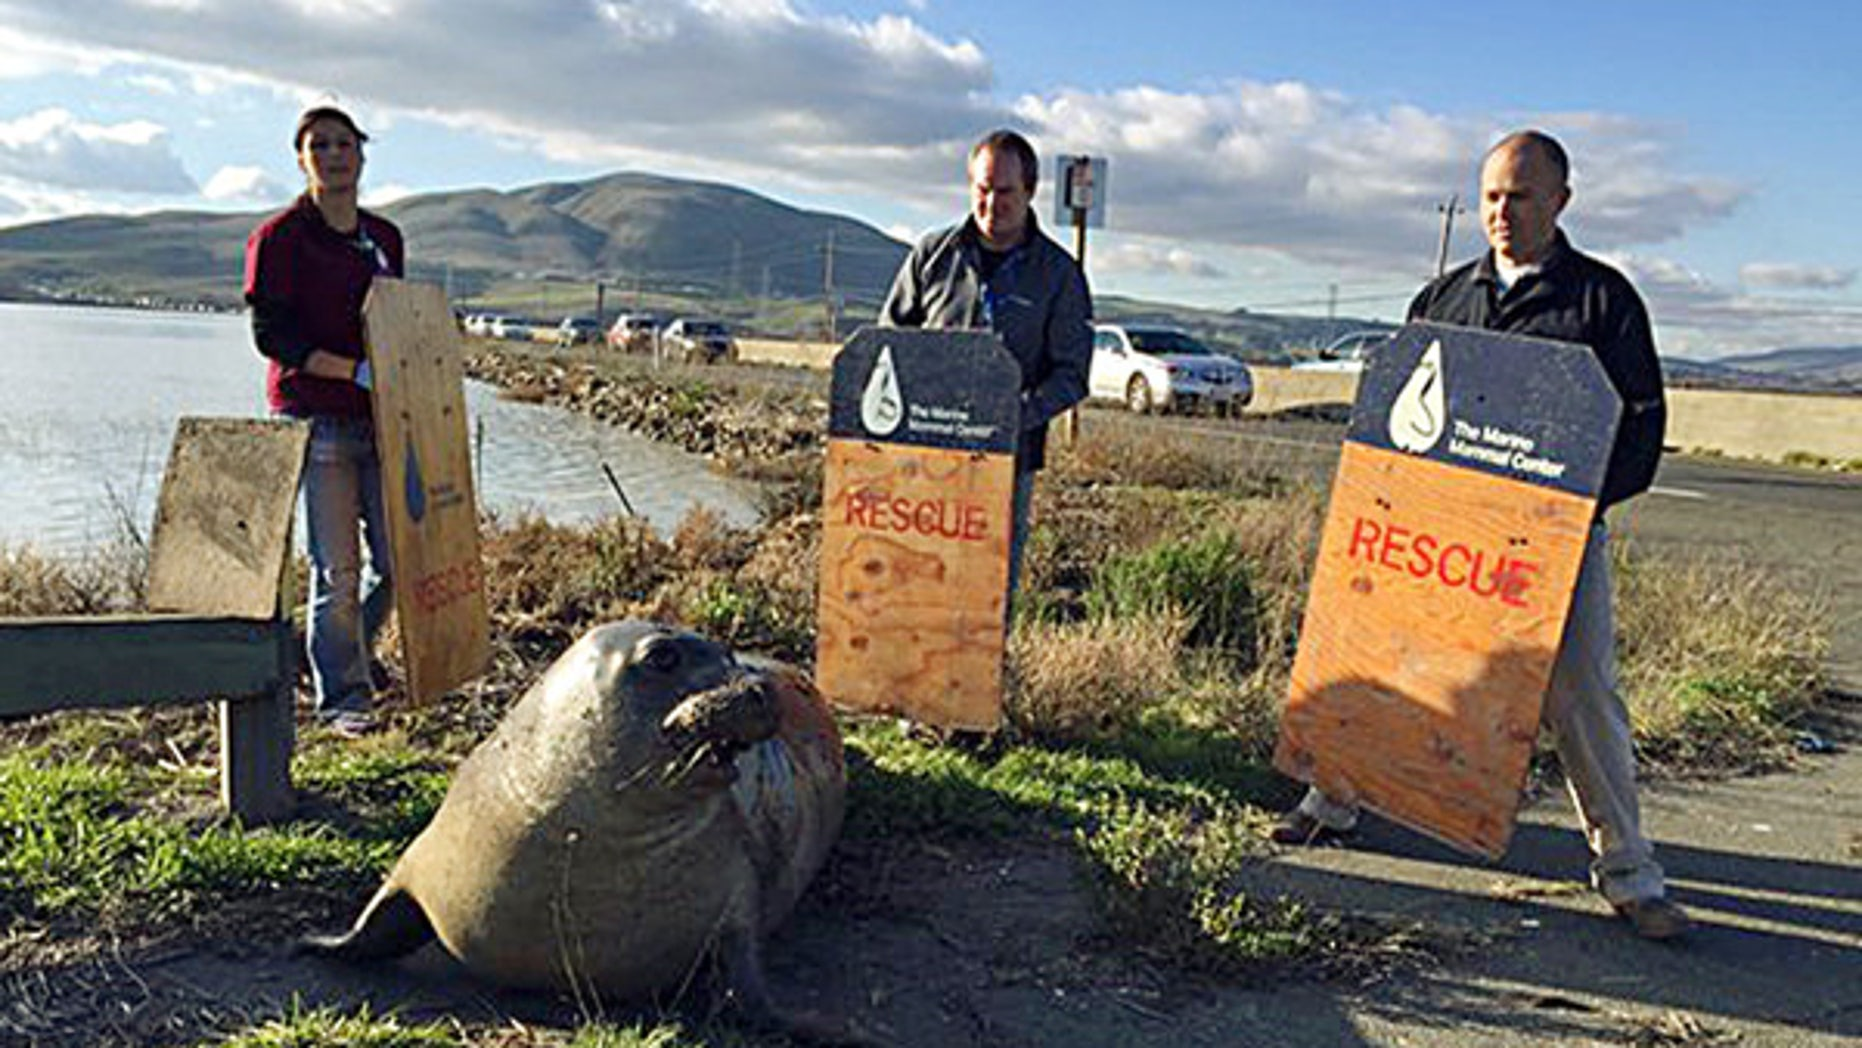 Dec. 28, 2015: n this photo provided by the California Highway Patrol, wildlife experts from the Marine Mammal Center in Sausalito attempt to corral an elephant seal that repeatedly tried to cross a highway, slowing traffic in Sonoma, Calif.